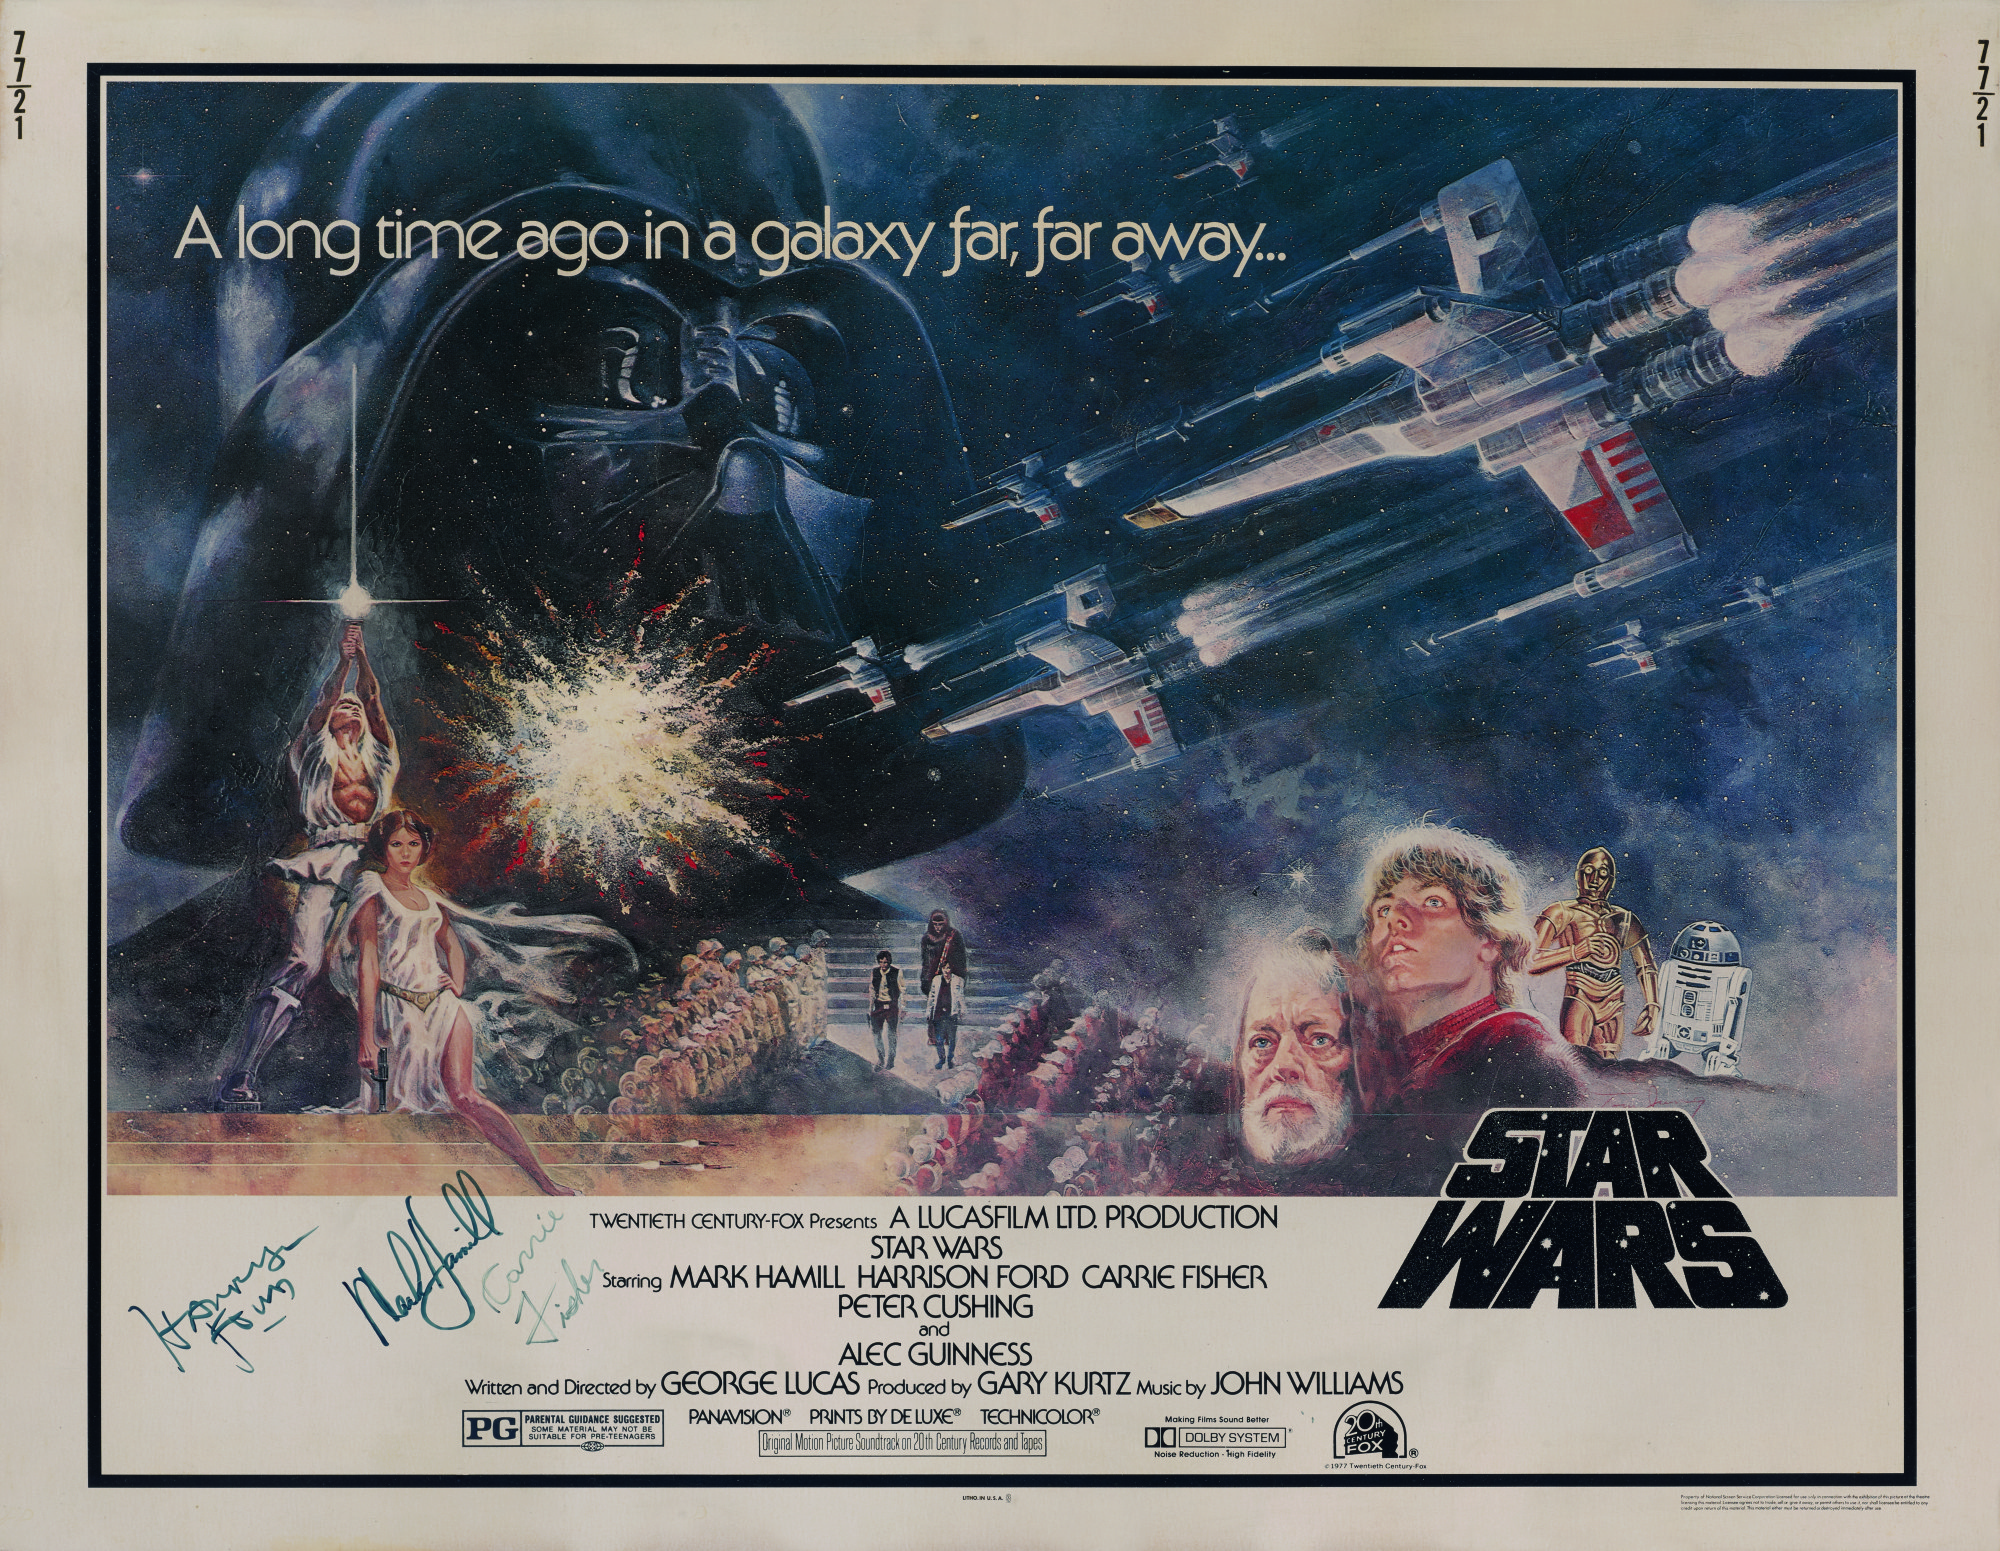 Star Wars (1977) poster, US, signed by Harrison Ford, Mark Hamill and a secretarial signature by Carrie Fisher's mother Debbie Reynolds